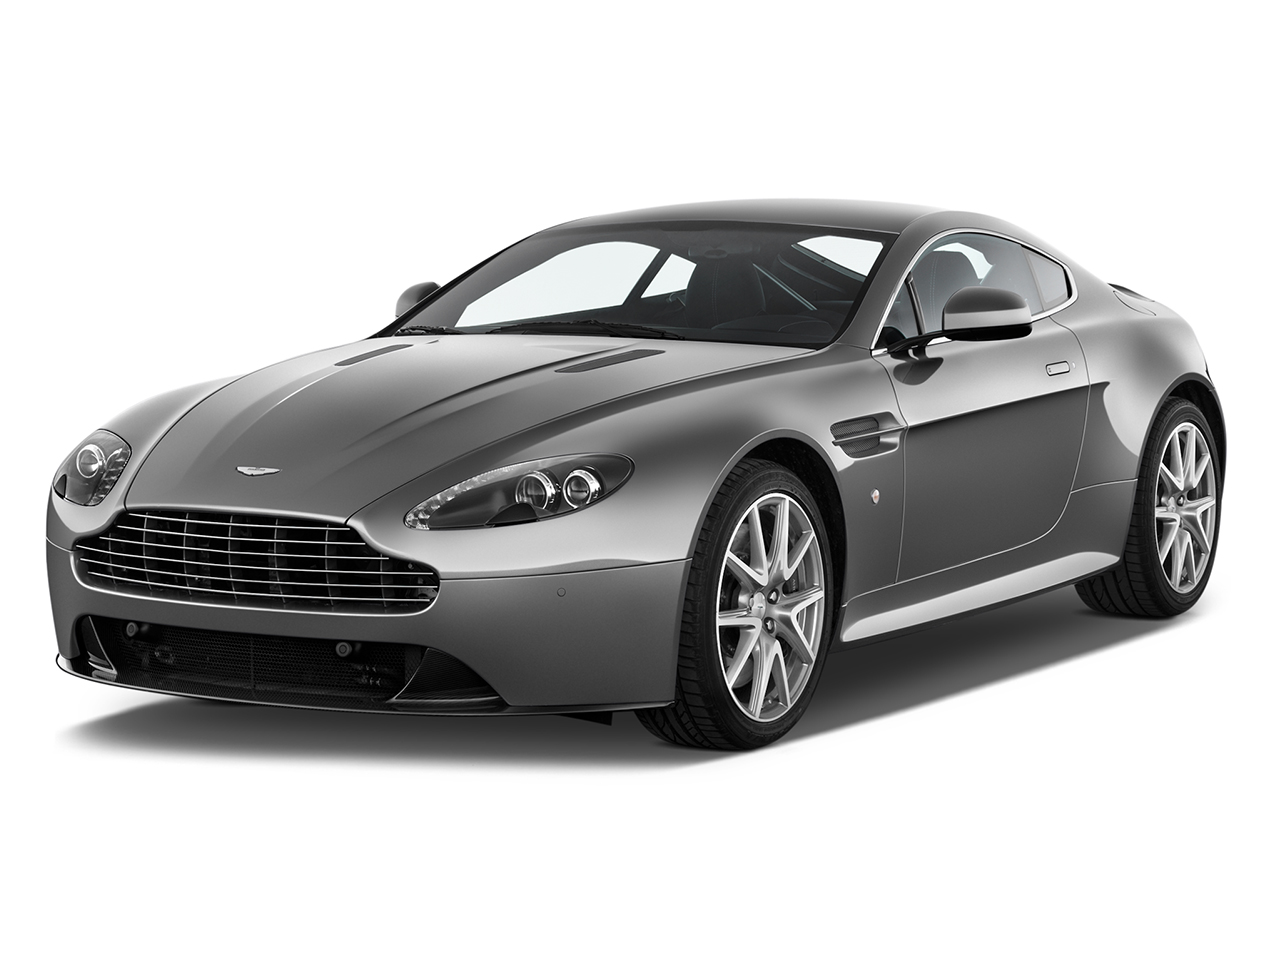 2018 aston martin vantage prices in uae, gulf specs & reviews for